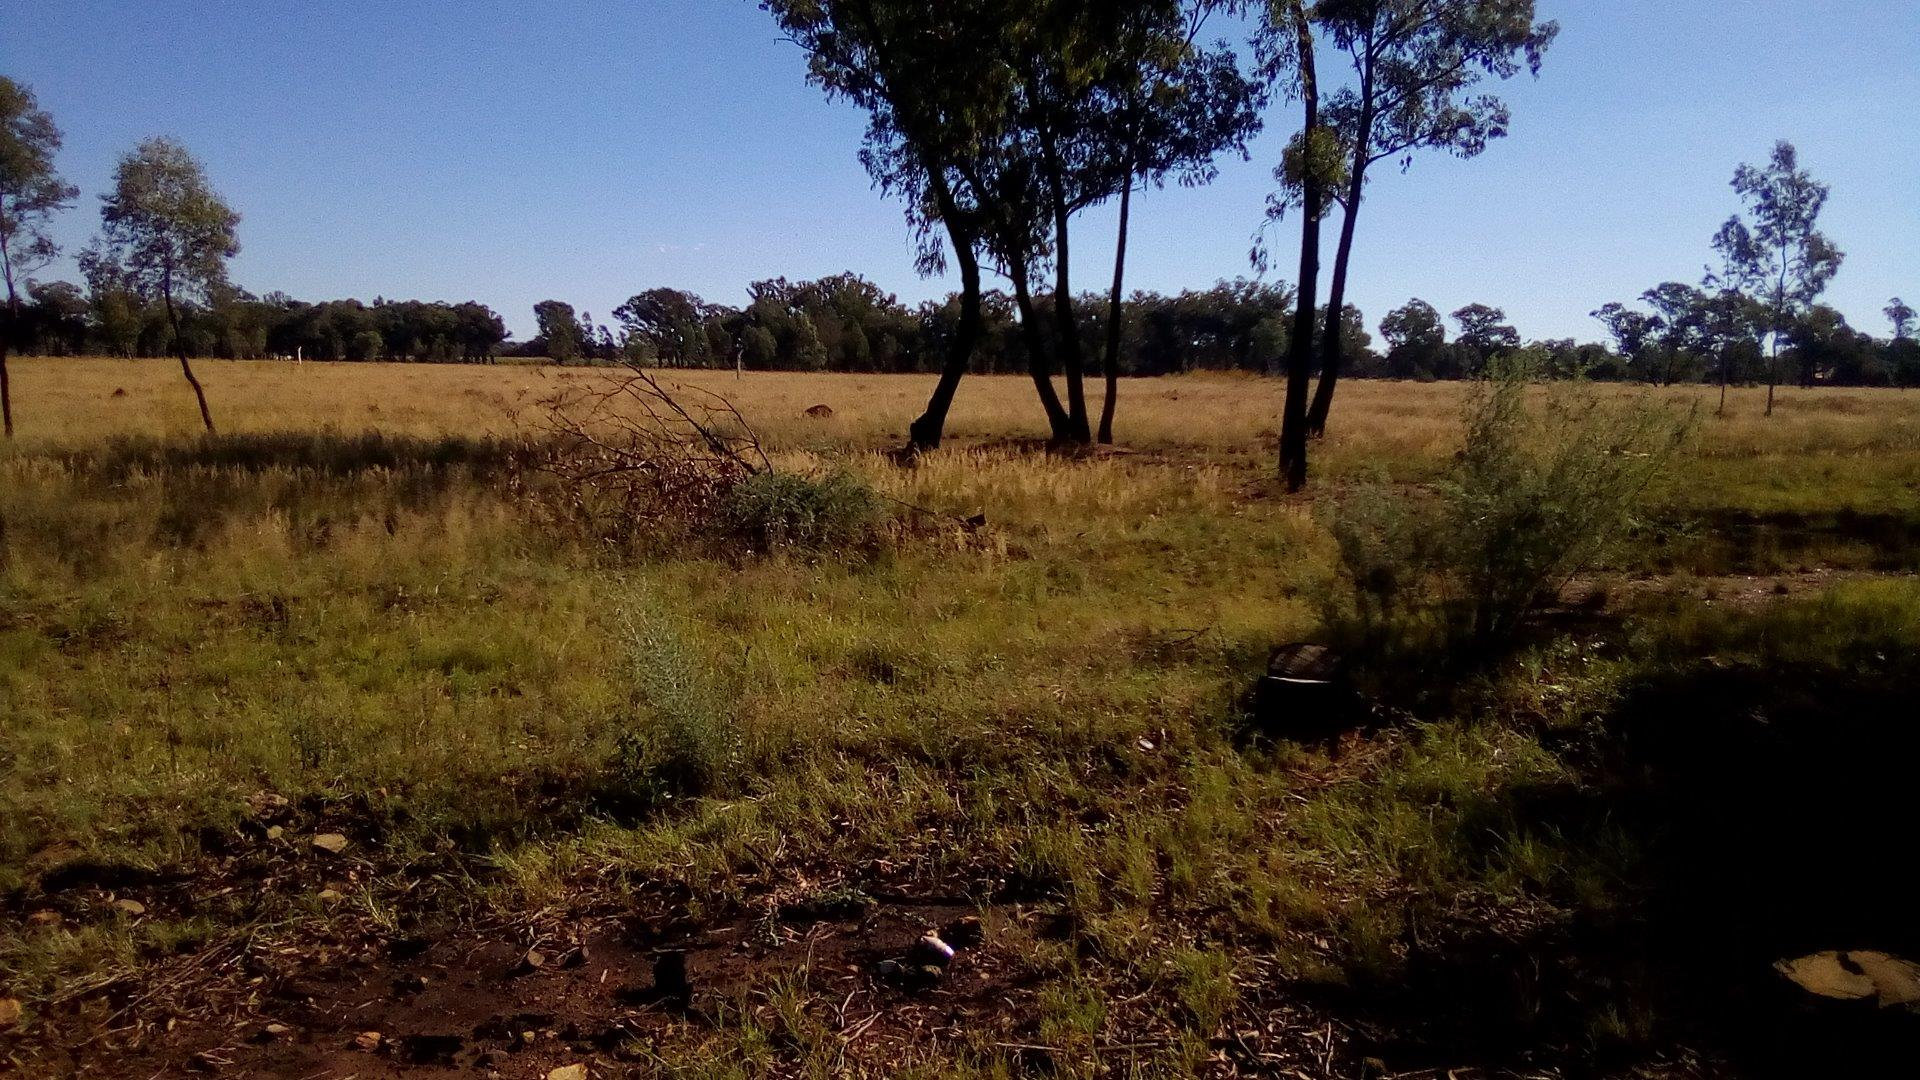 Vacant Land for Sale in Valley Settlements A H, Meyerton - Gauteng